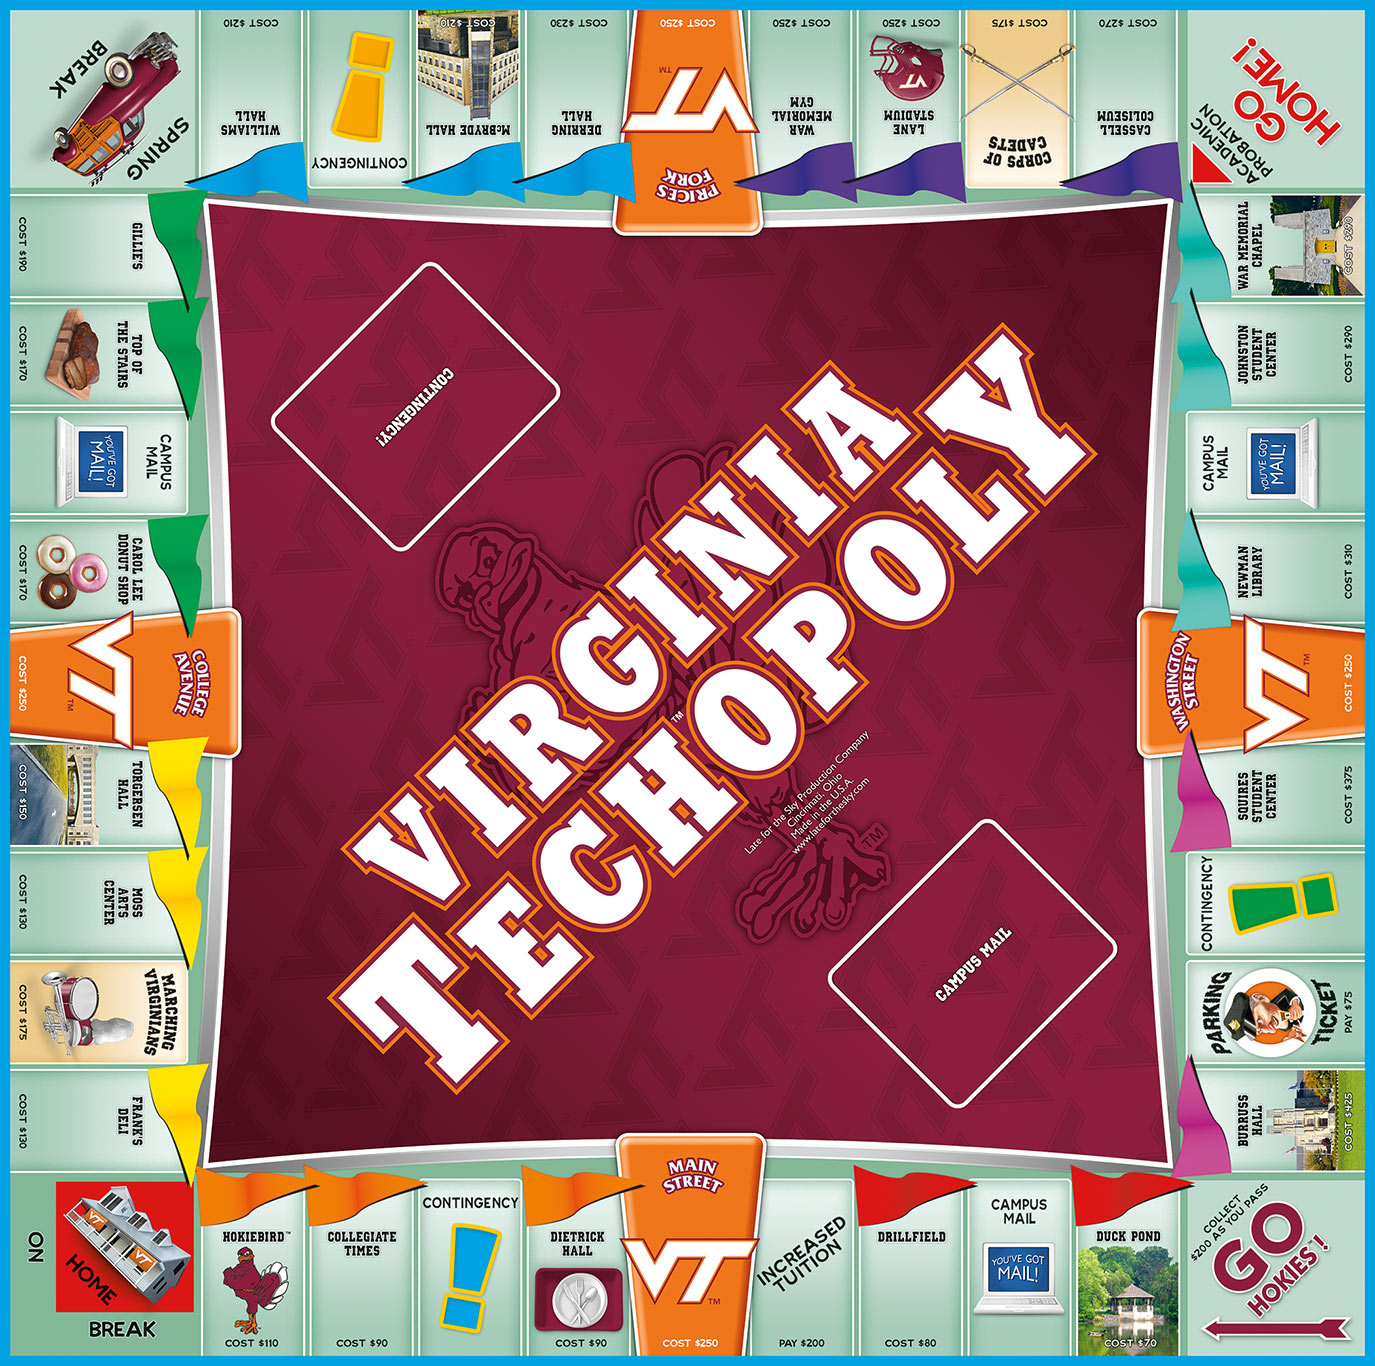 VA.TECHOPOLY Board Game